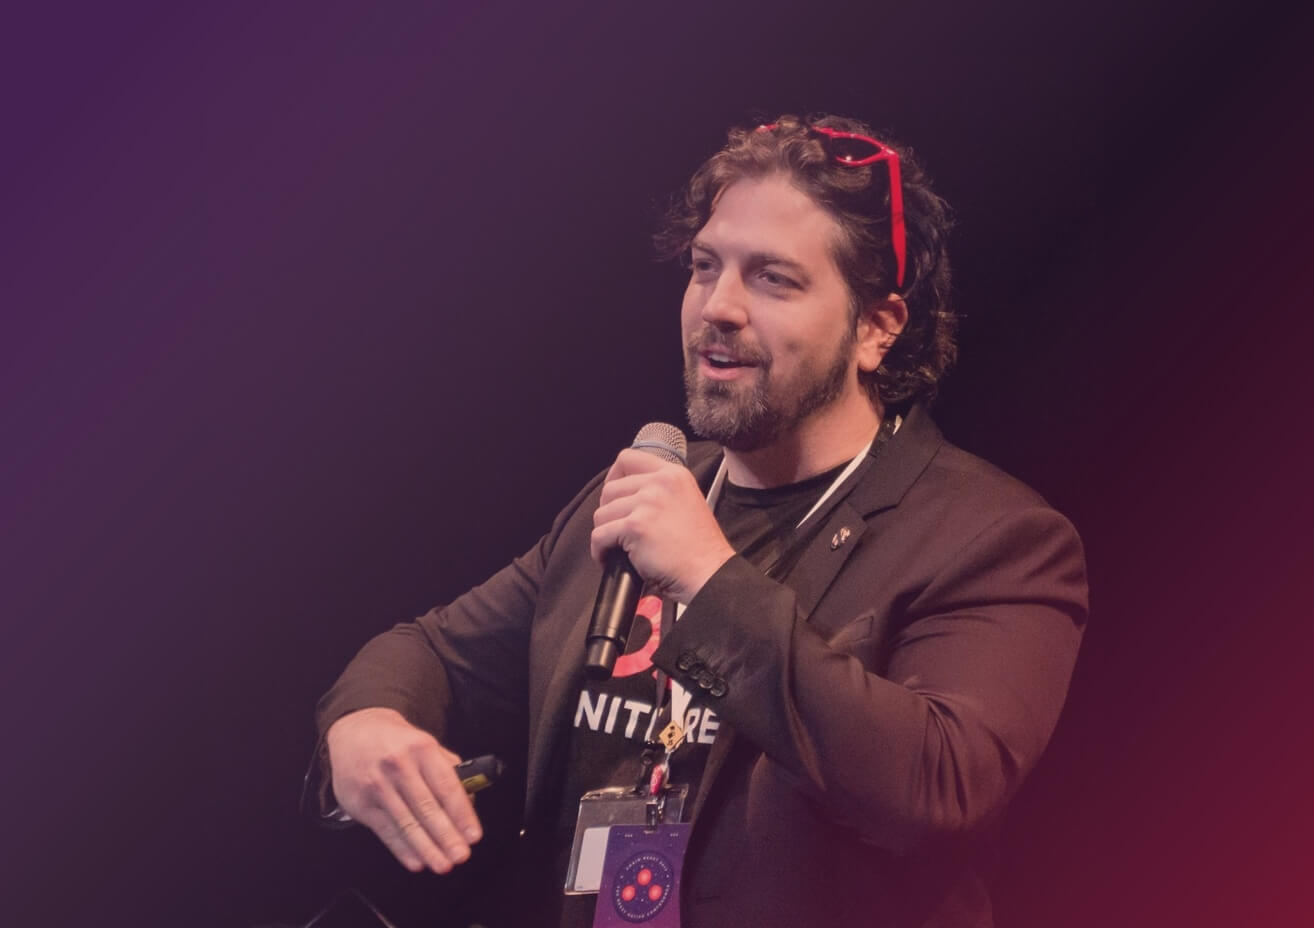 Gant speaking at a conference